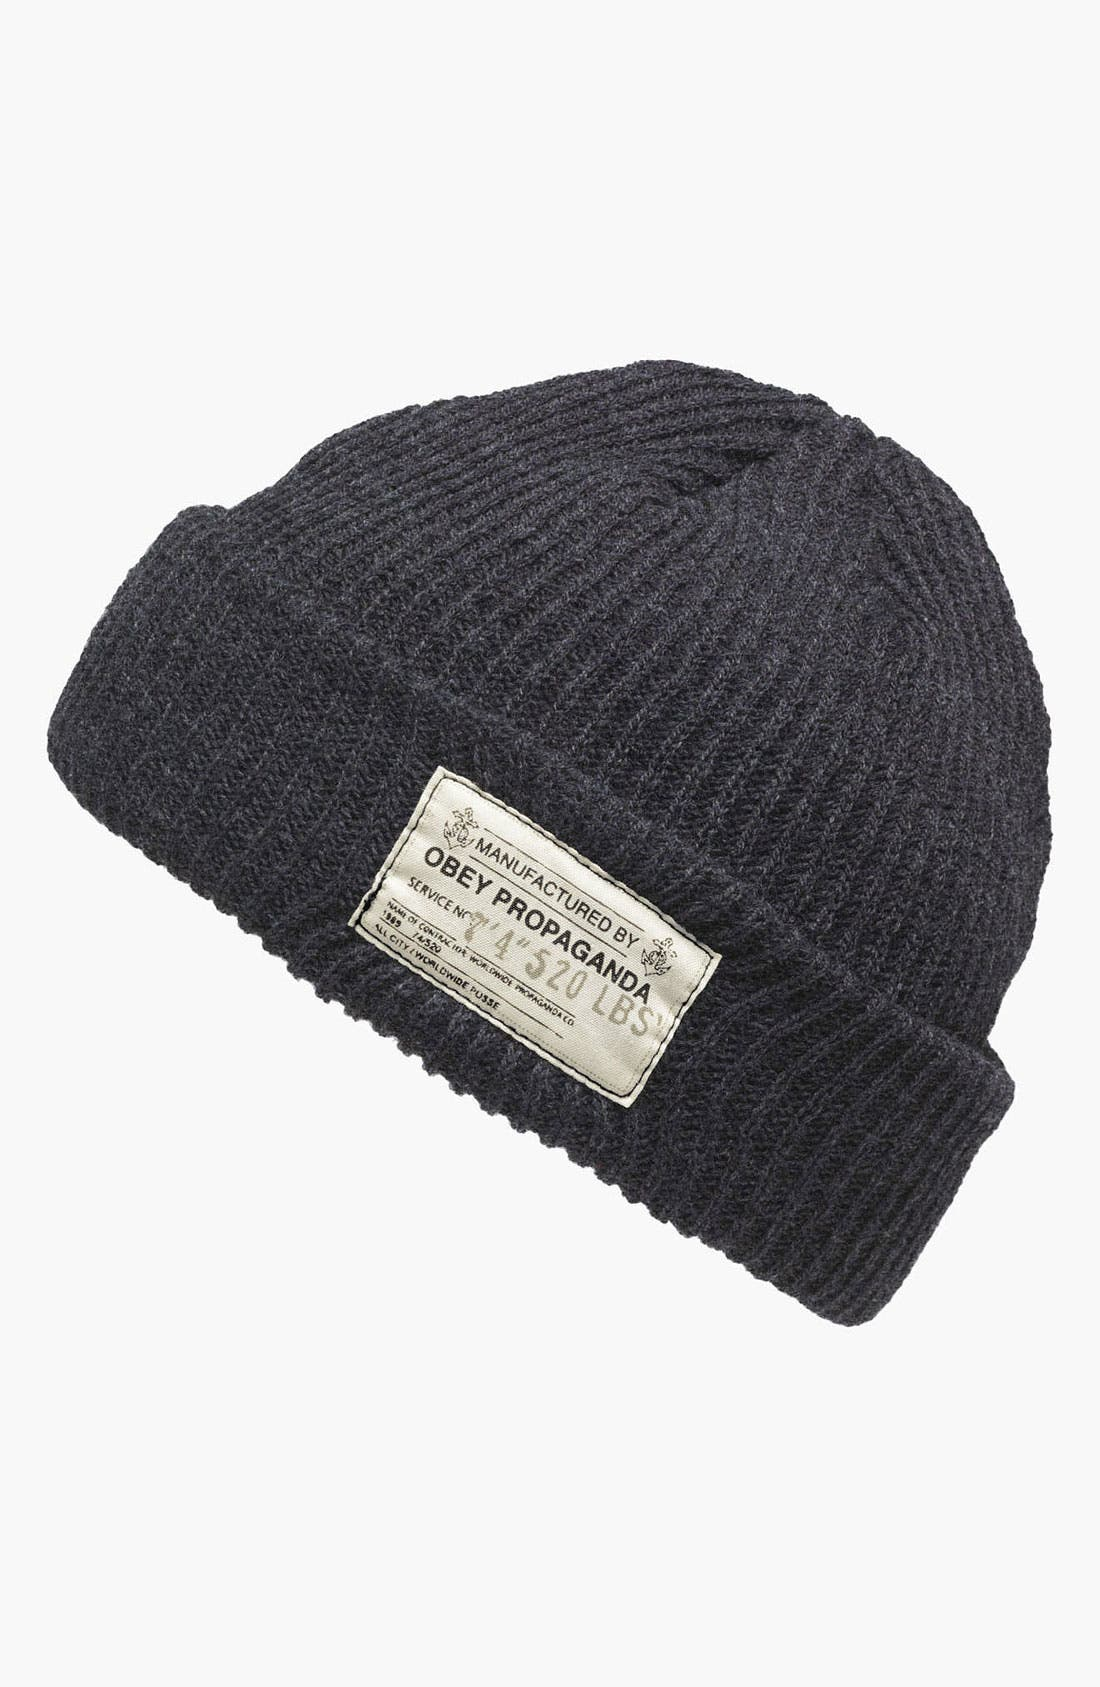 Main Image - Obey 'Draft' Knit Cap